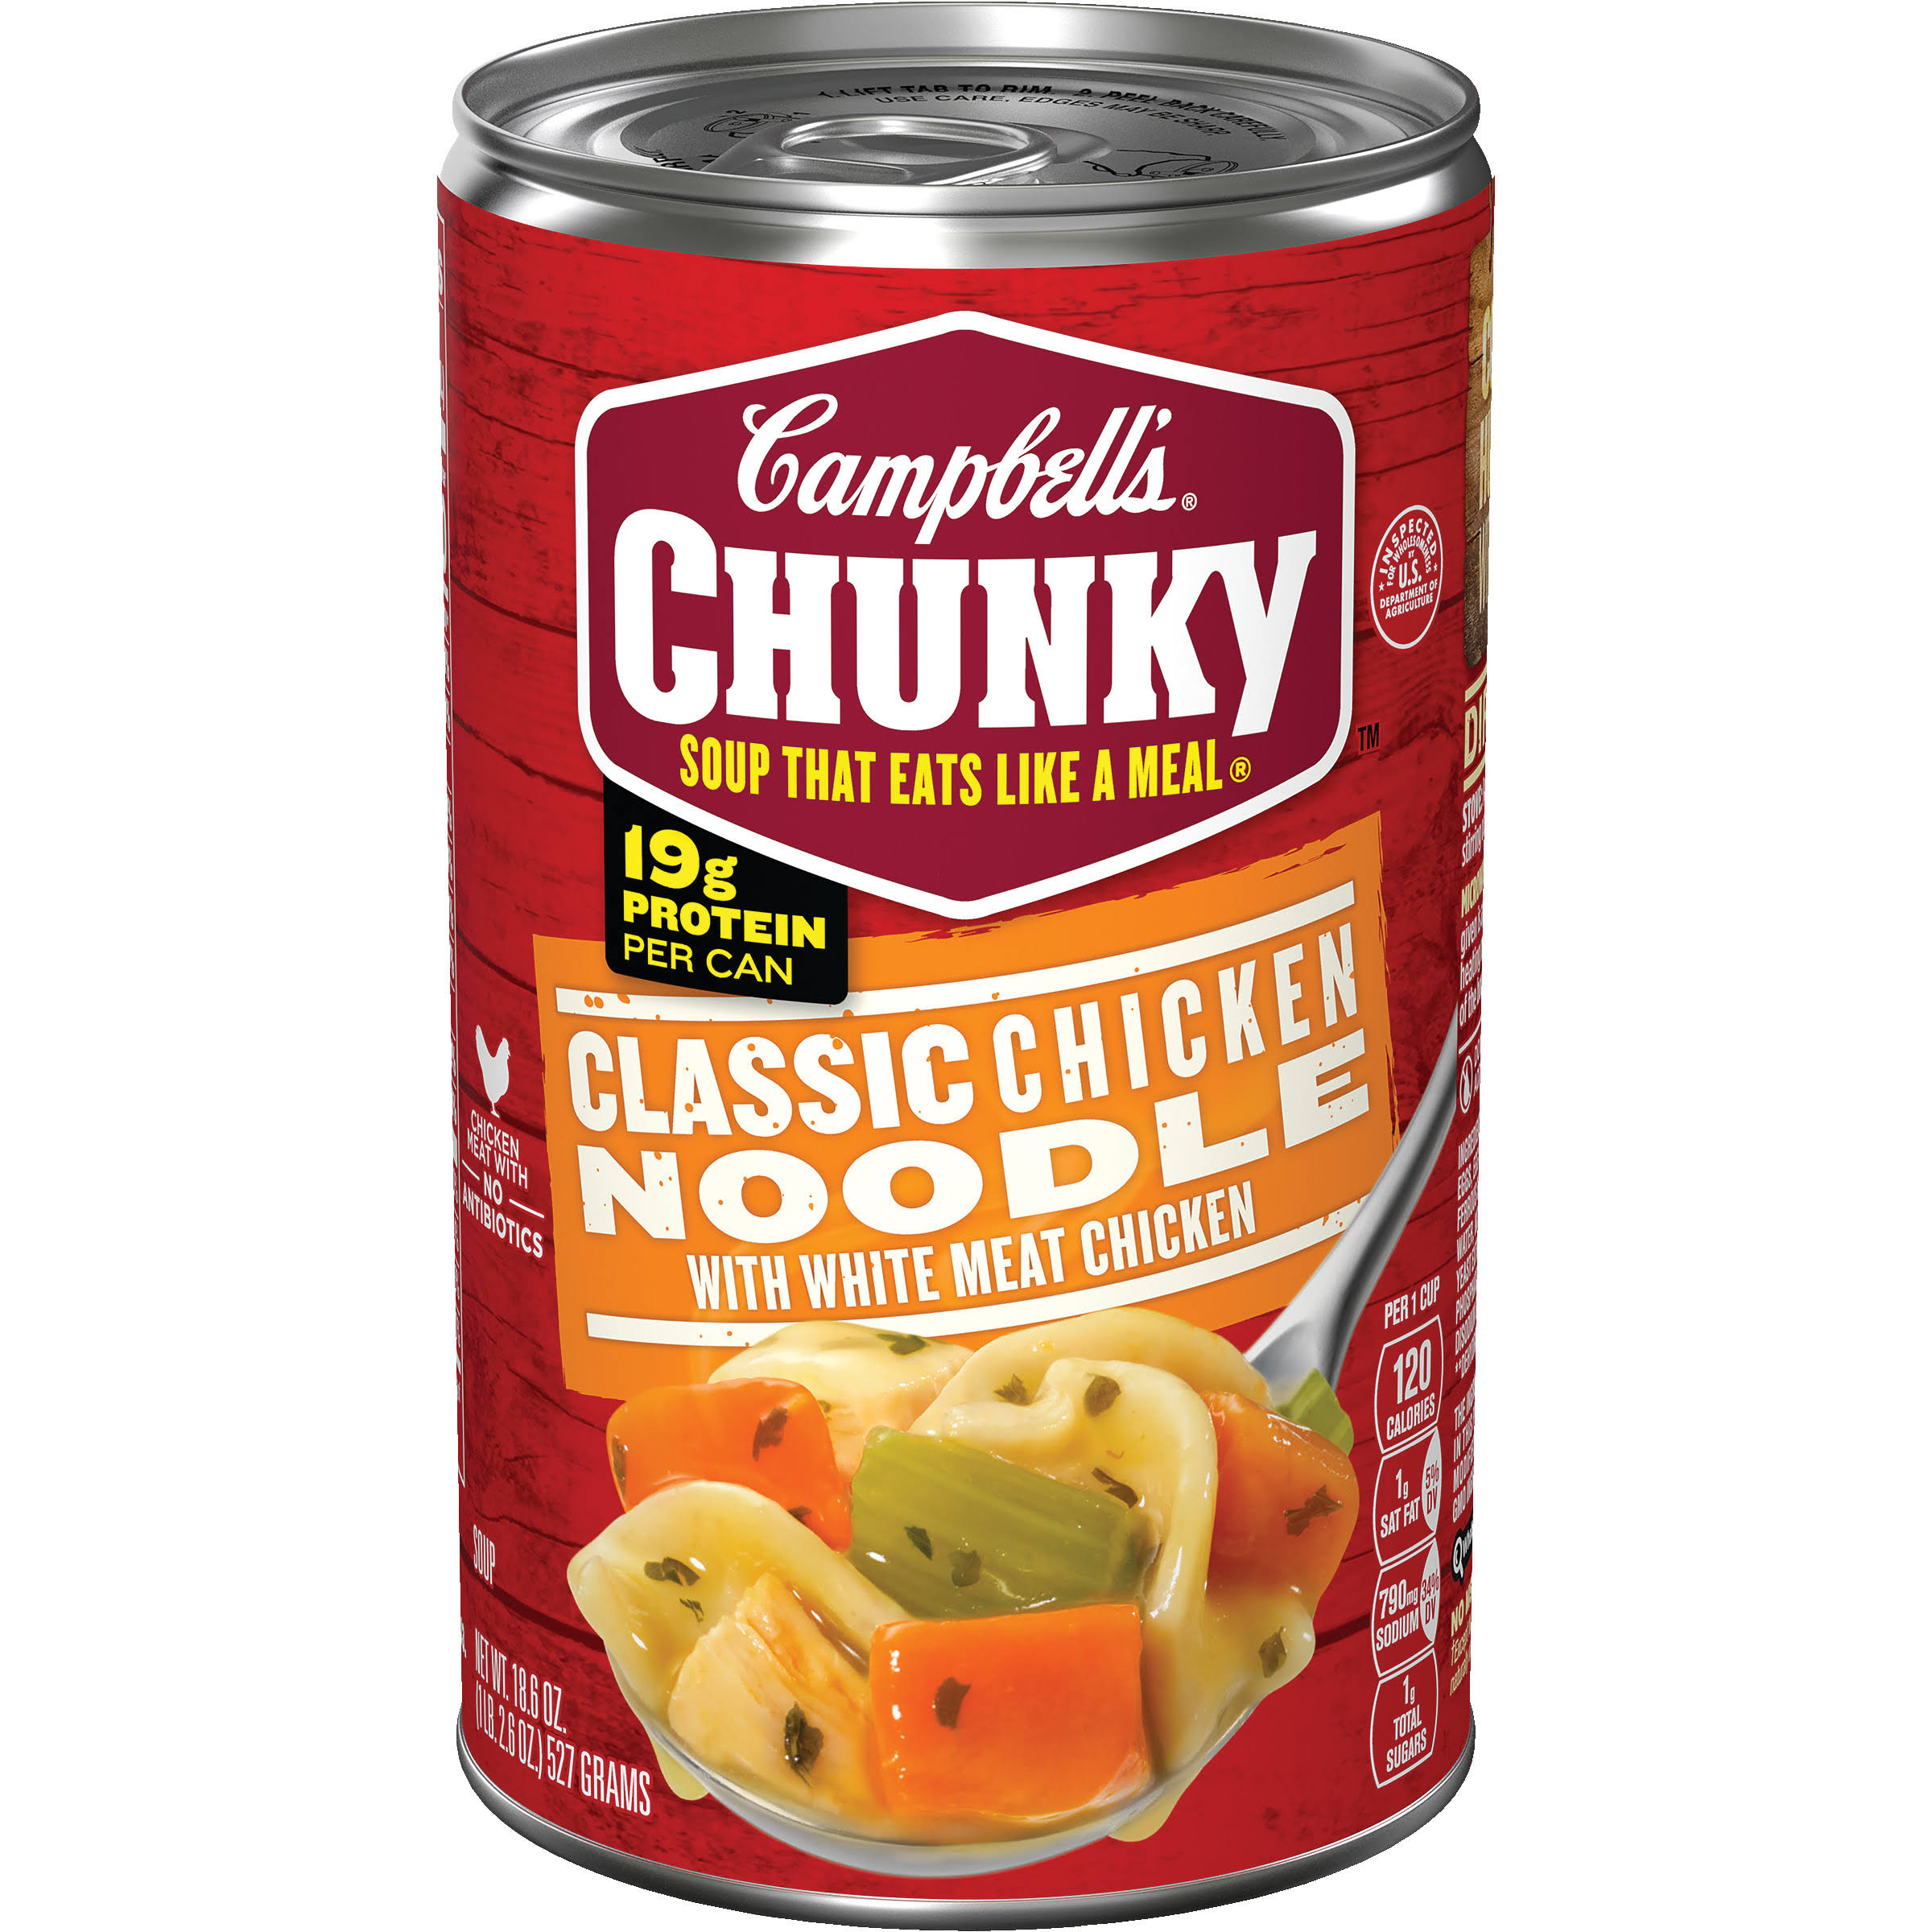 Campbells Chunky Classic Chicken Noodle Soup - 19oz